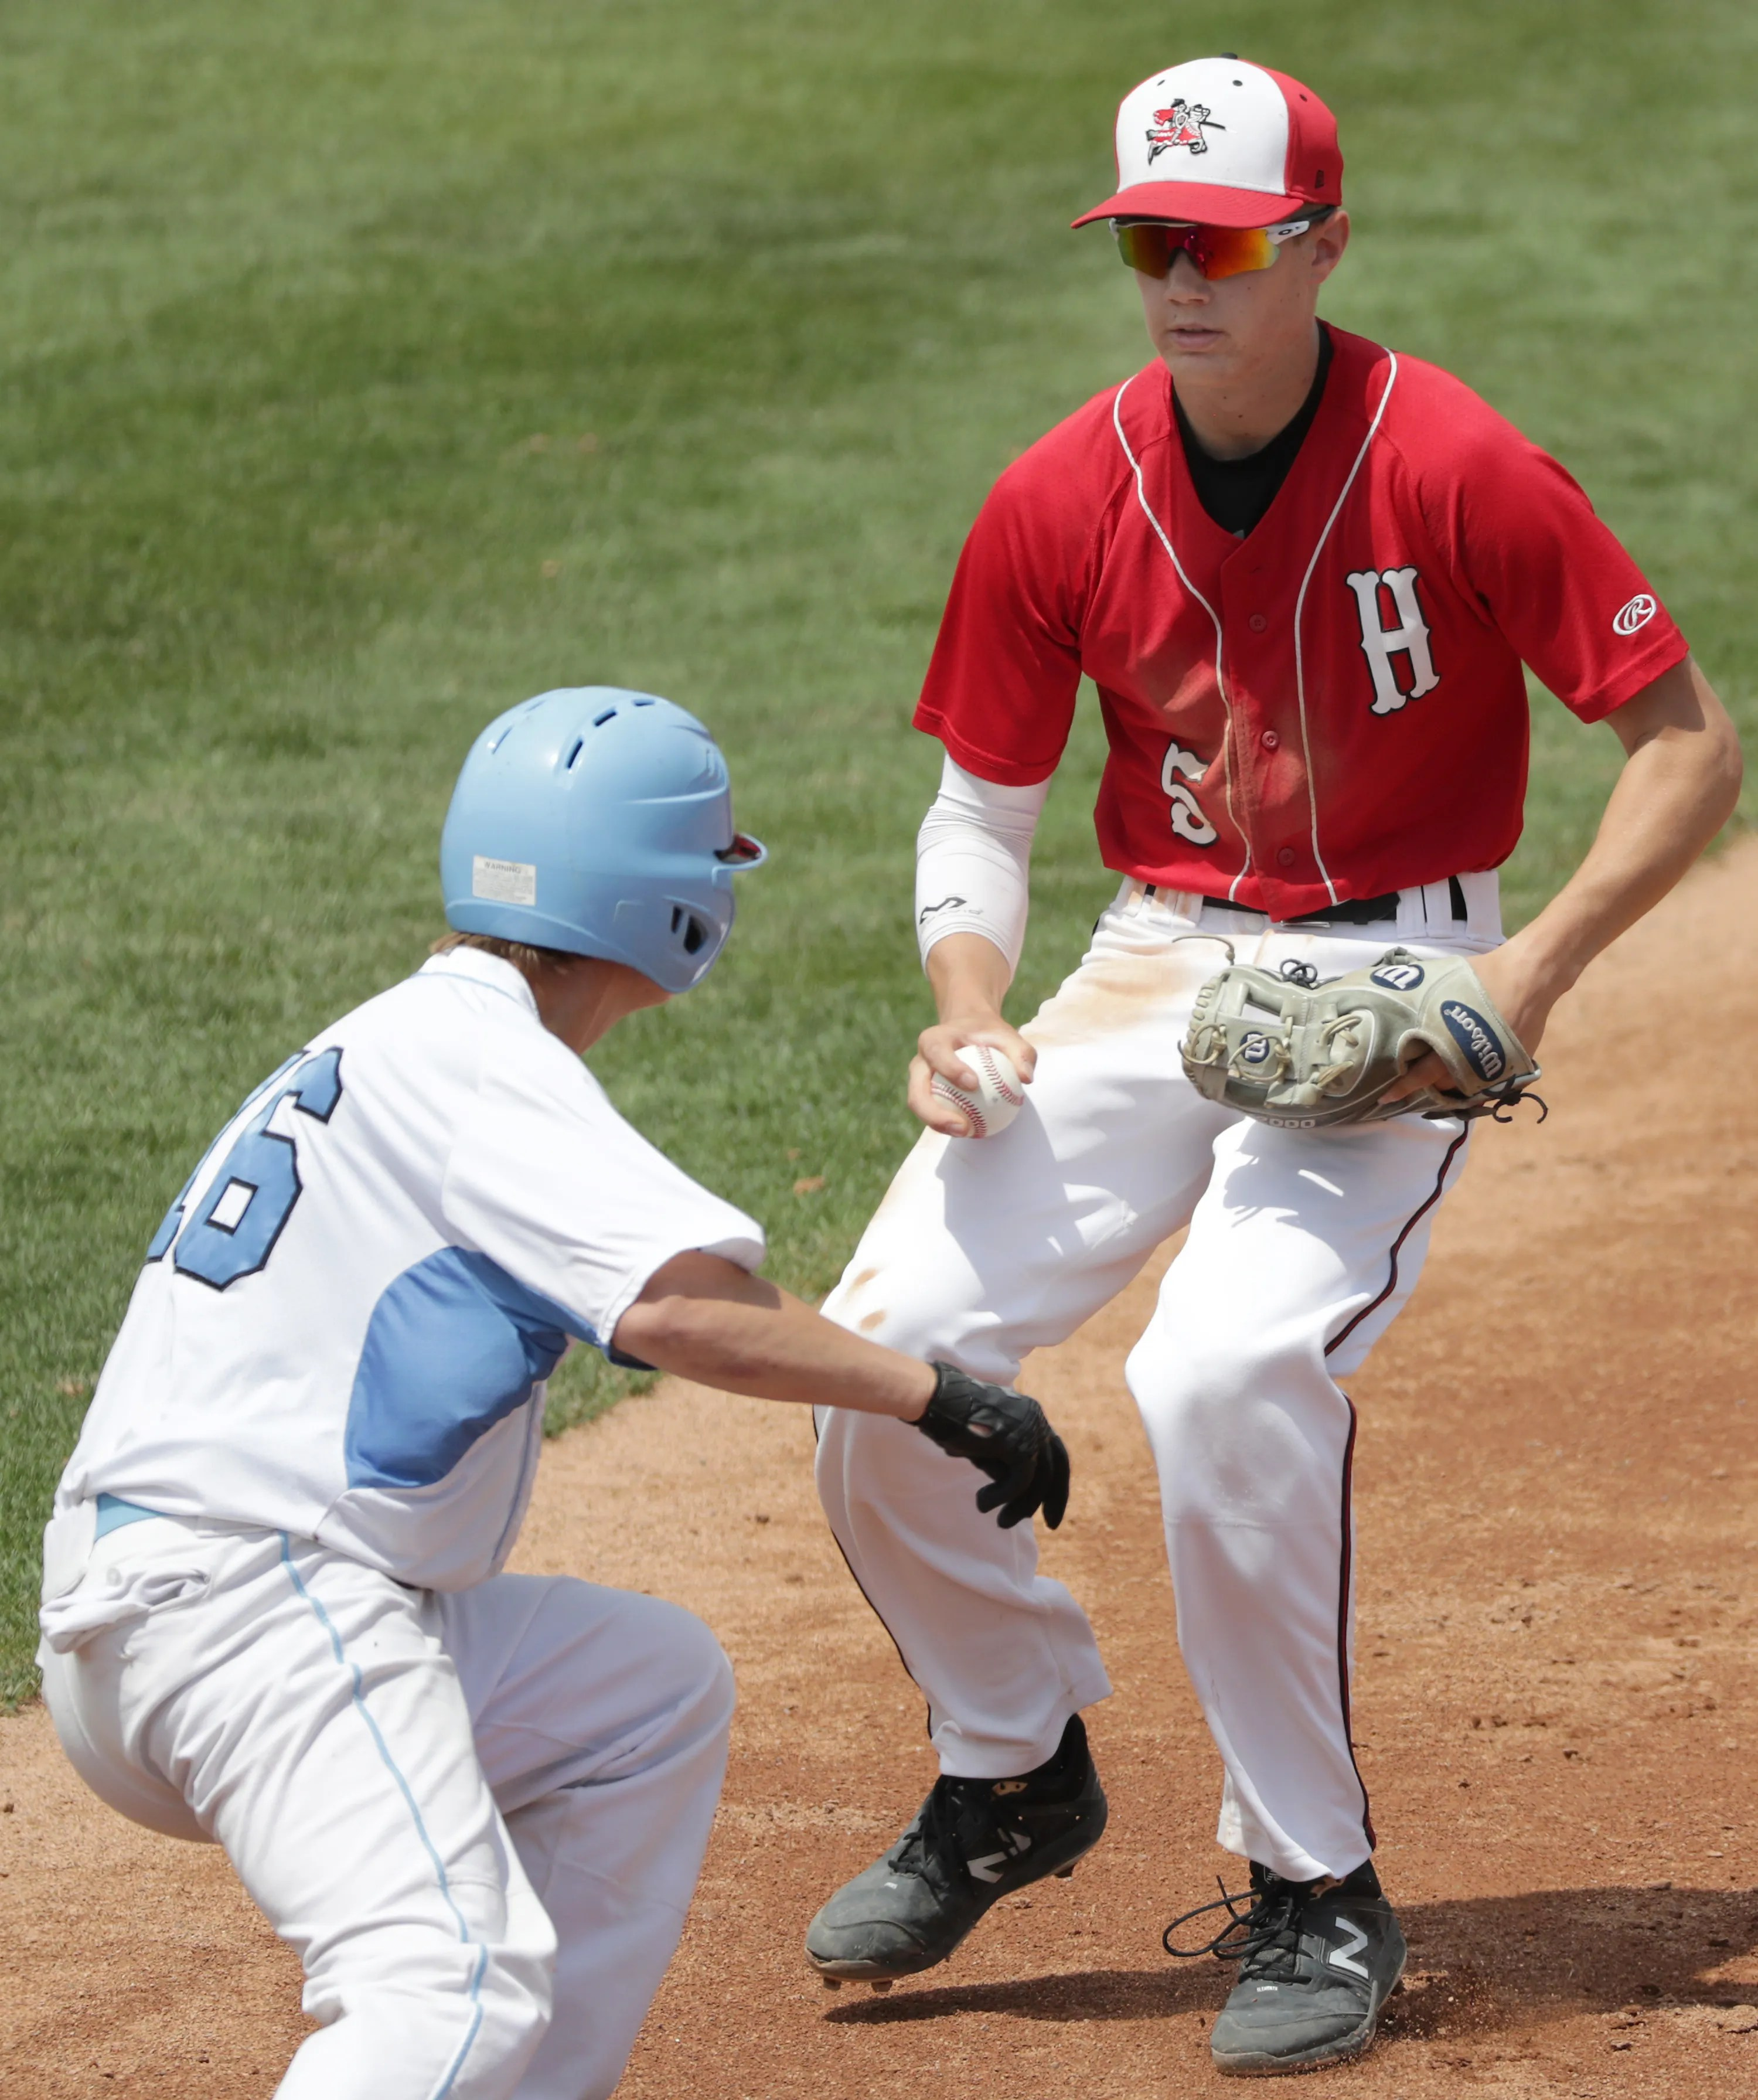 Wiaa State Baseball Tournament Opens With Division 1 Action